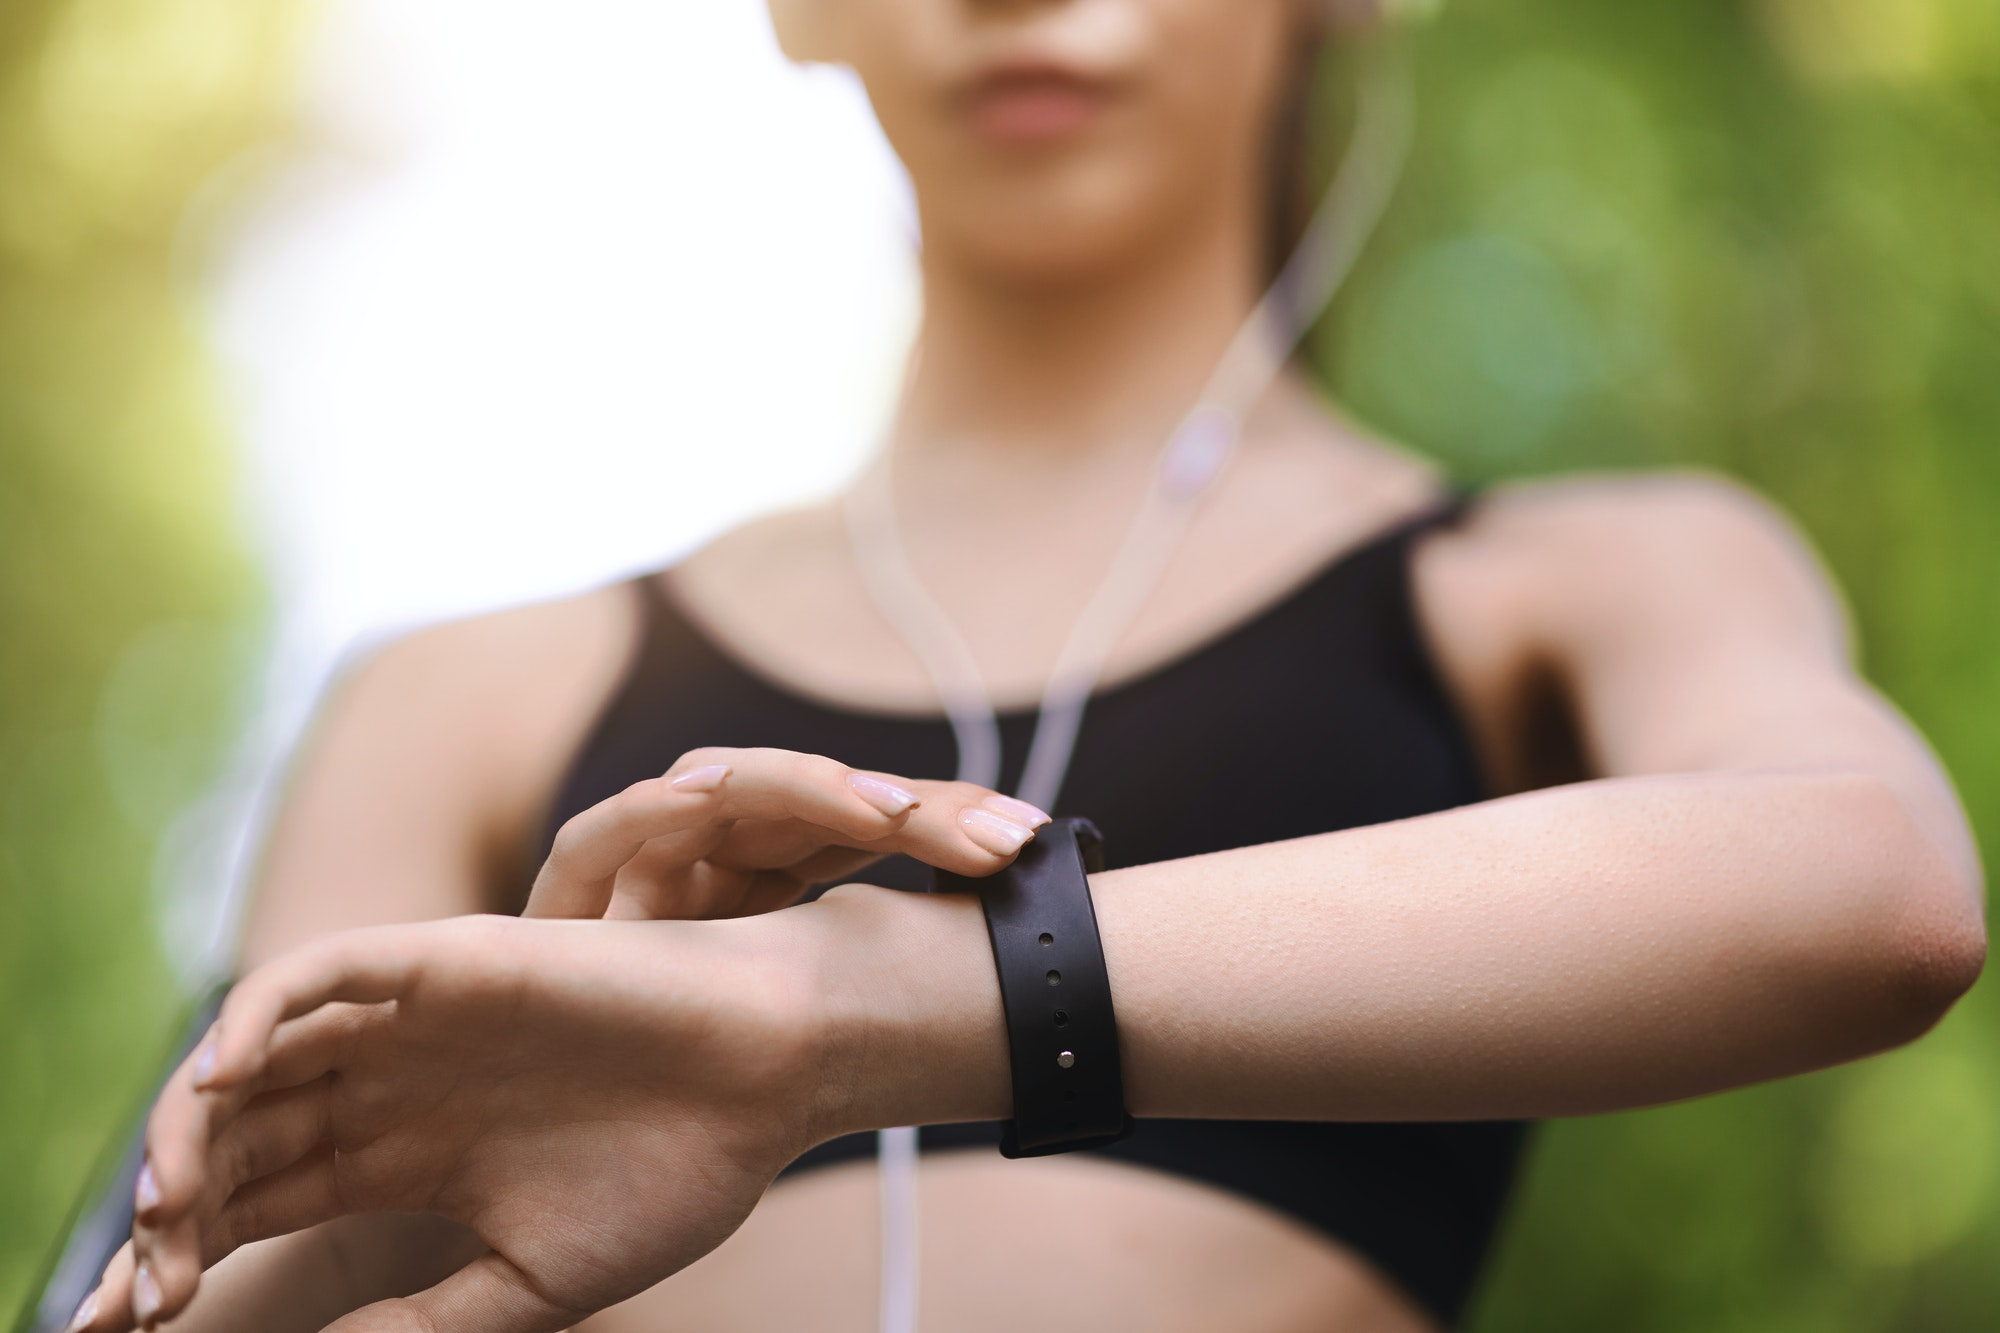 Gadgets For Sport. Female athlete using smartwatch outdoors to track training progress